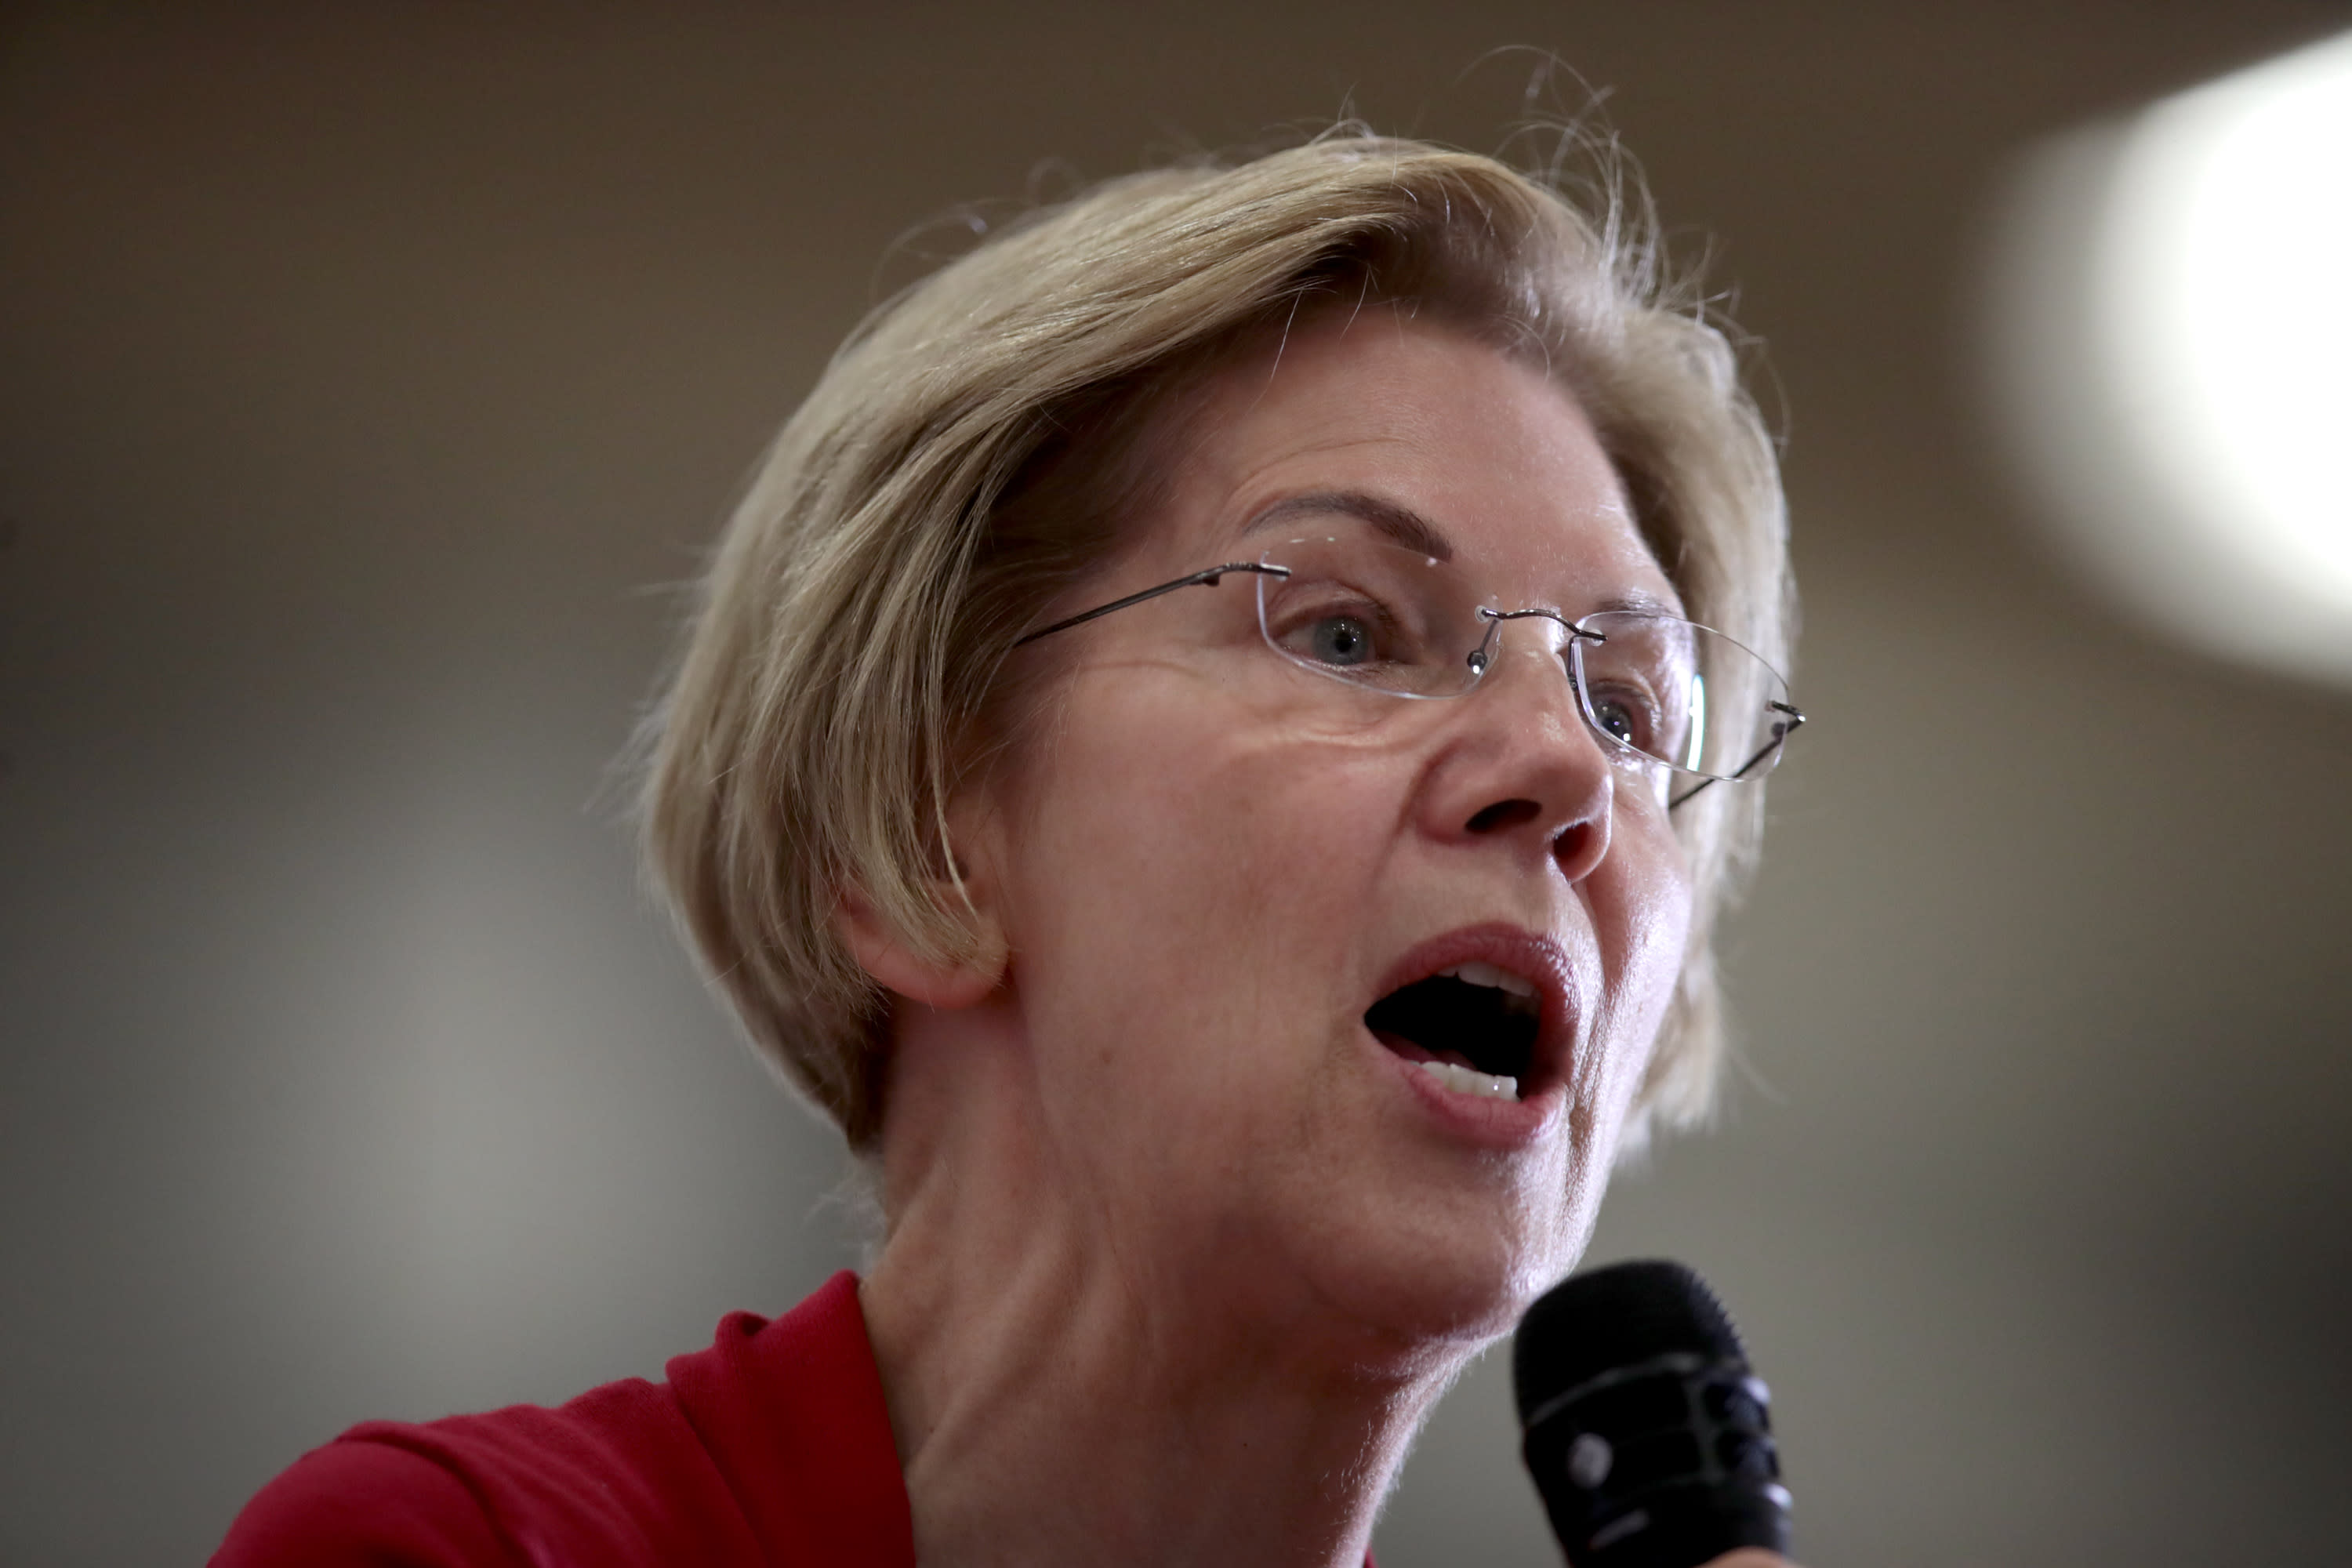 Elizabeth Warren blasts Navient, student loan servicer where billionaire Leon Cooperman is stakeholder